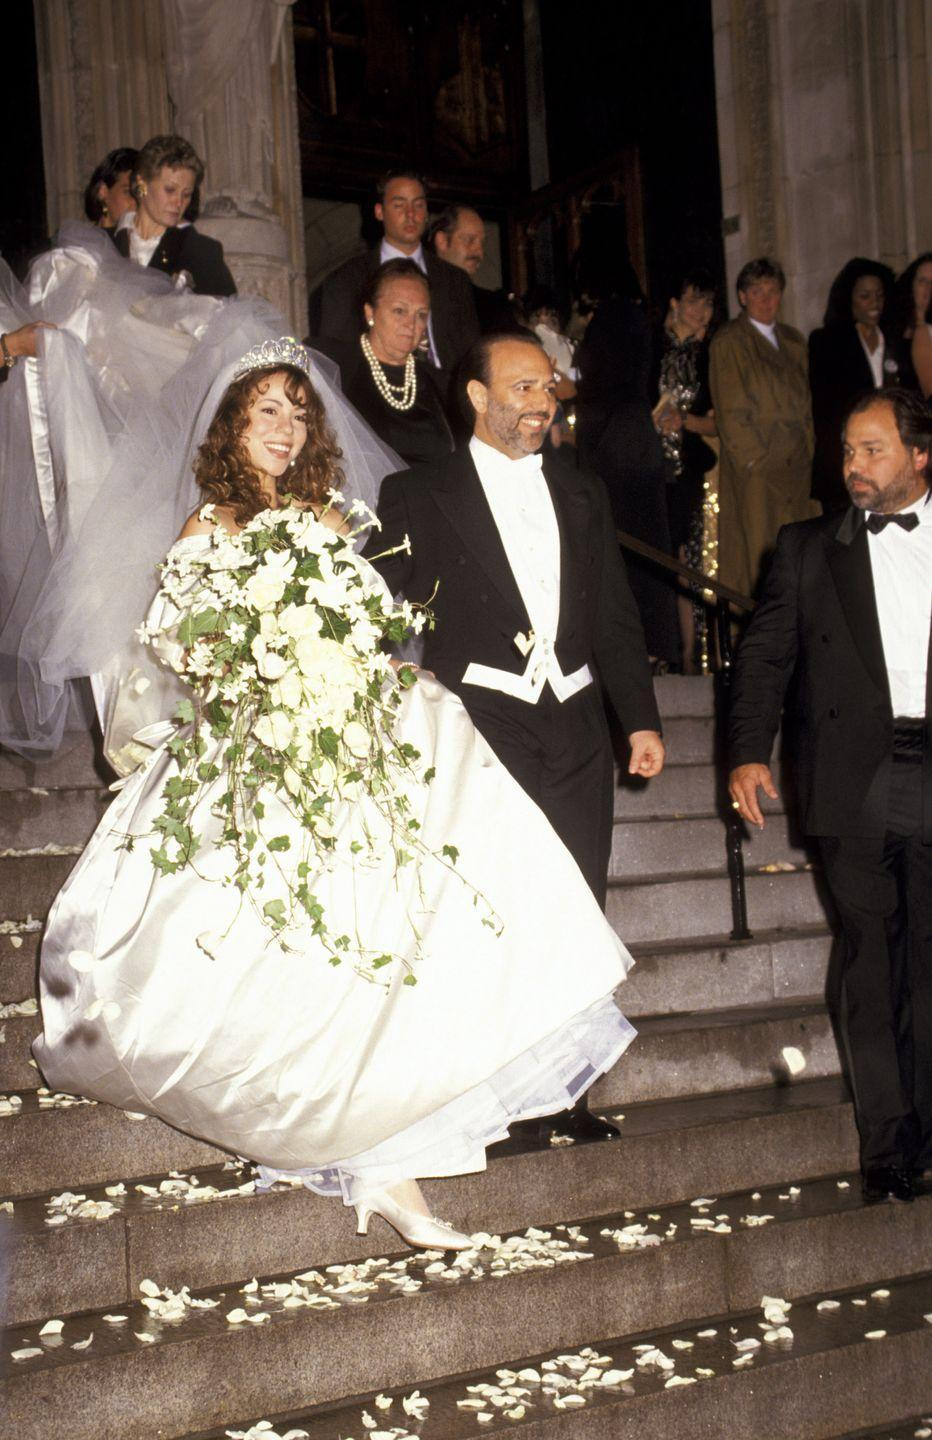 """<p>Mariah Carey married music executive Tommy Mottola on June 5. Carey was 23, and Mottola was 20 years her senior. Carey later described herself to <em><a href=""""https://www.cosmopolitan.com/entertainment/celebs/a28137694/mariah-carey-profile-cover-cosmo-interview-sex-shade-memes/"""" rel=""""nofollow noopener"""" target=""""_blank"""" data-ylk=""""slk:Cosmopolitan"""" class=""""link rapid-noclick-resp"""">Cosmopolitan</a></em> as a """"child bride"""" in that marriage. The couple divorced in 1998.</p>"""